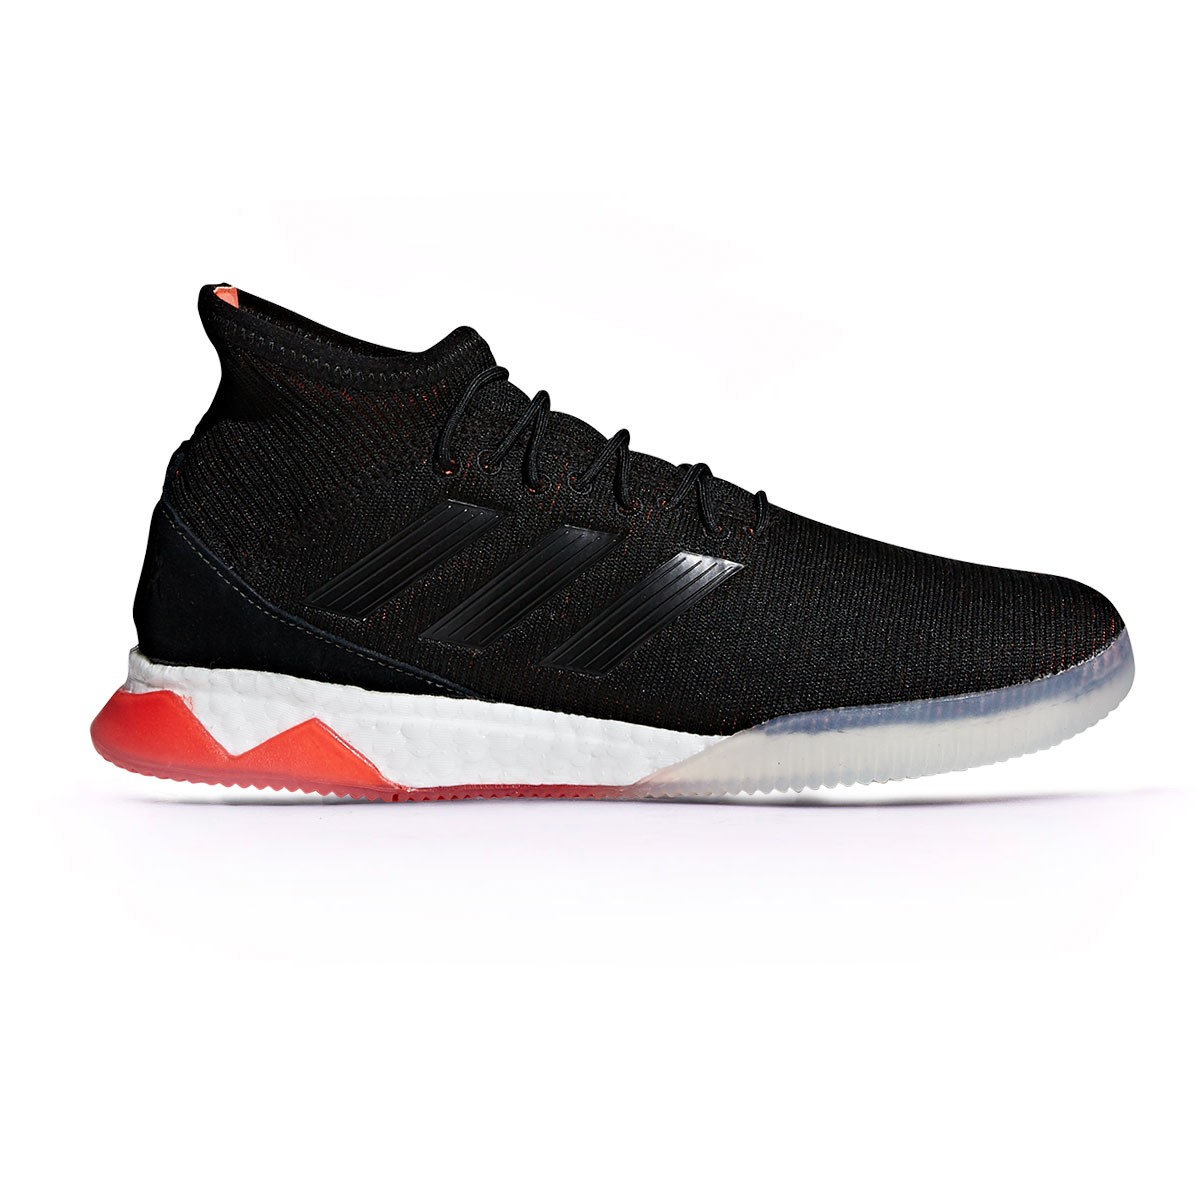 444eaac0ce2d Trainers adidas Predator Tango 18.1 TR White-Core black-Real coral -  Football store Fútbol Emotion